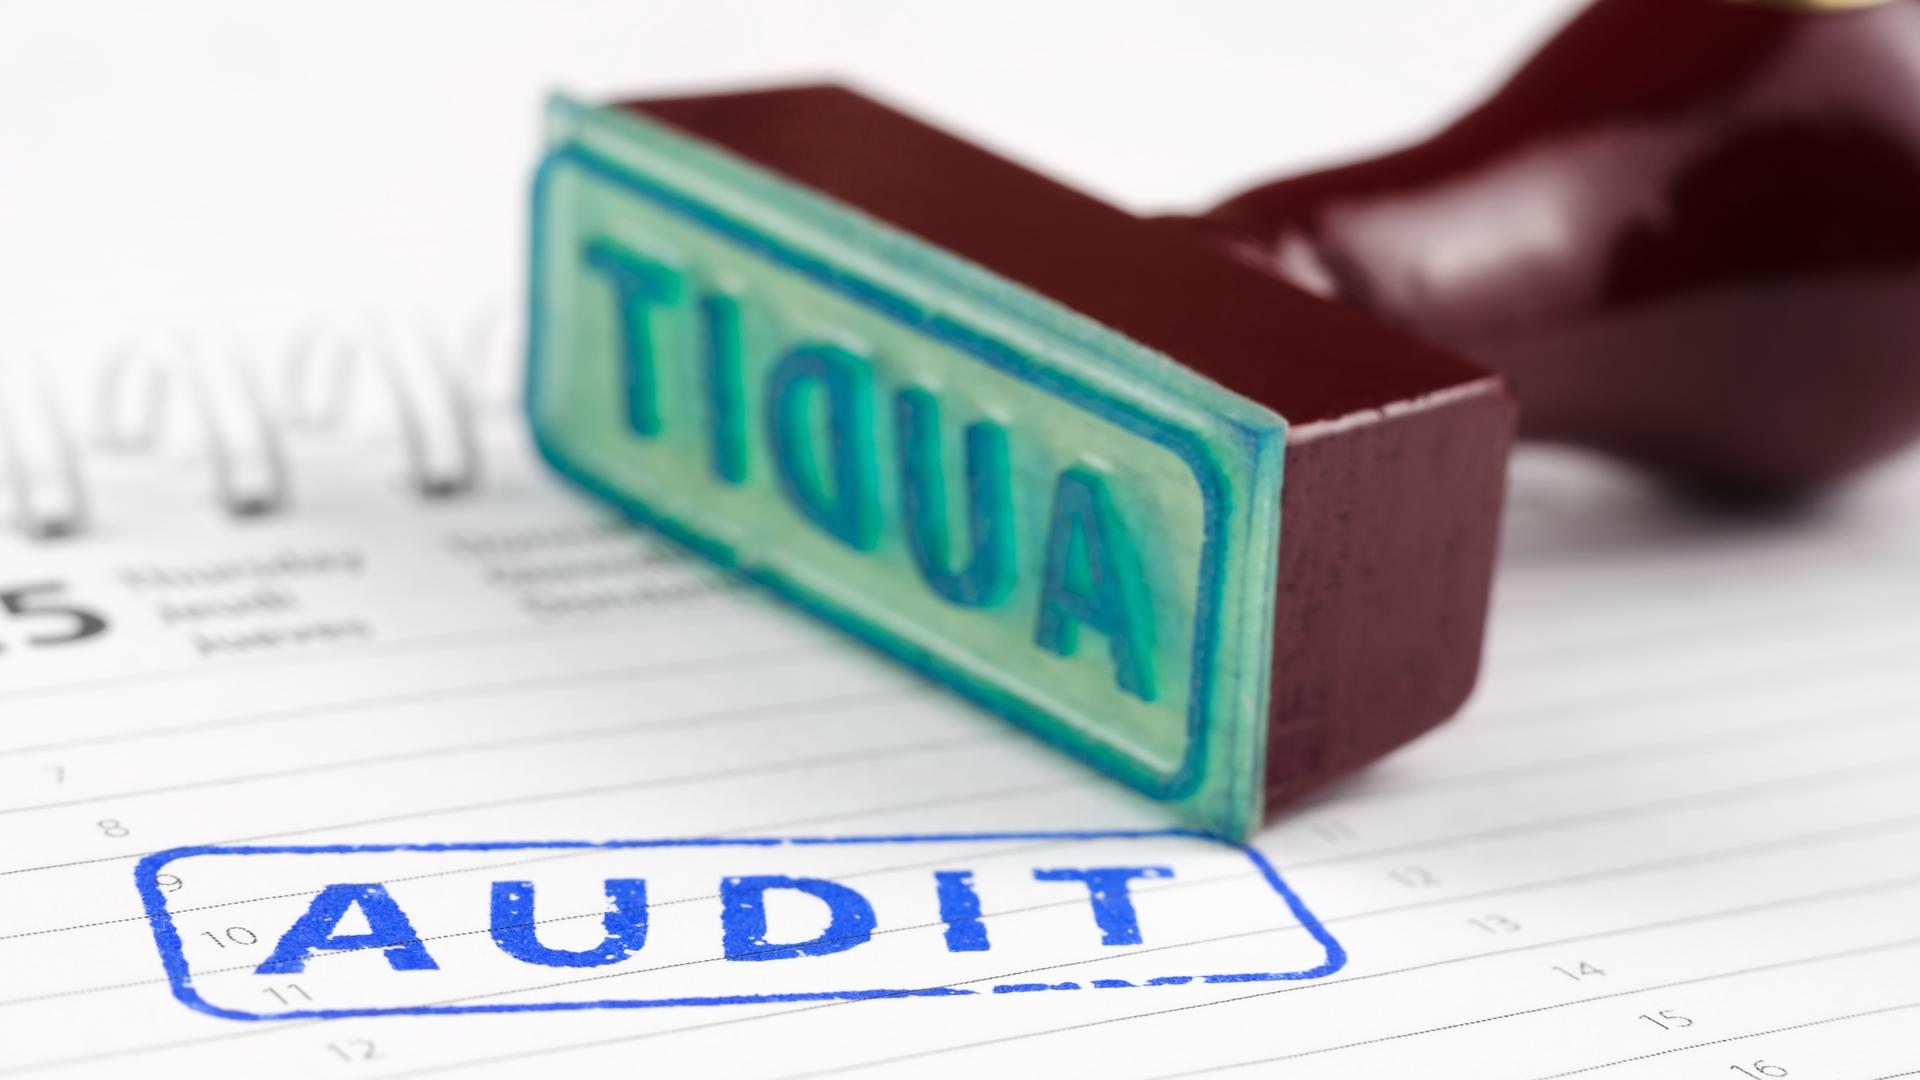 Audit gutberaten